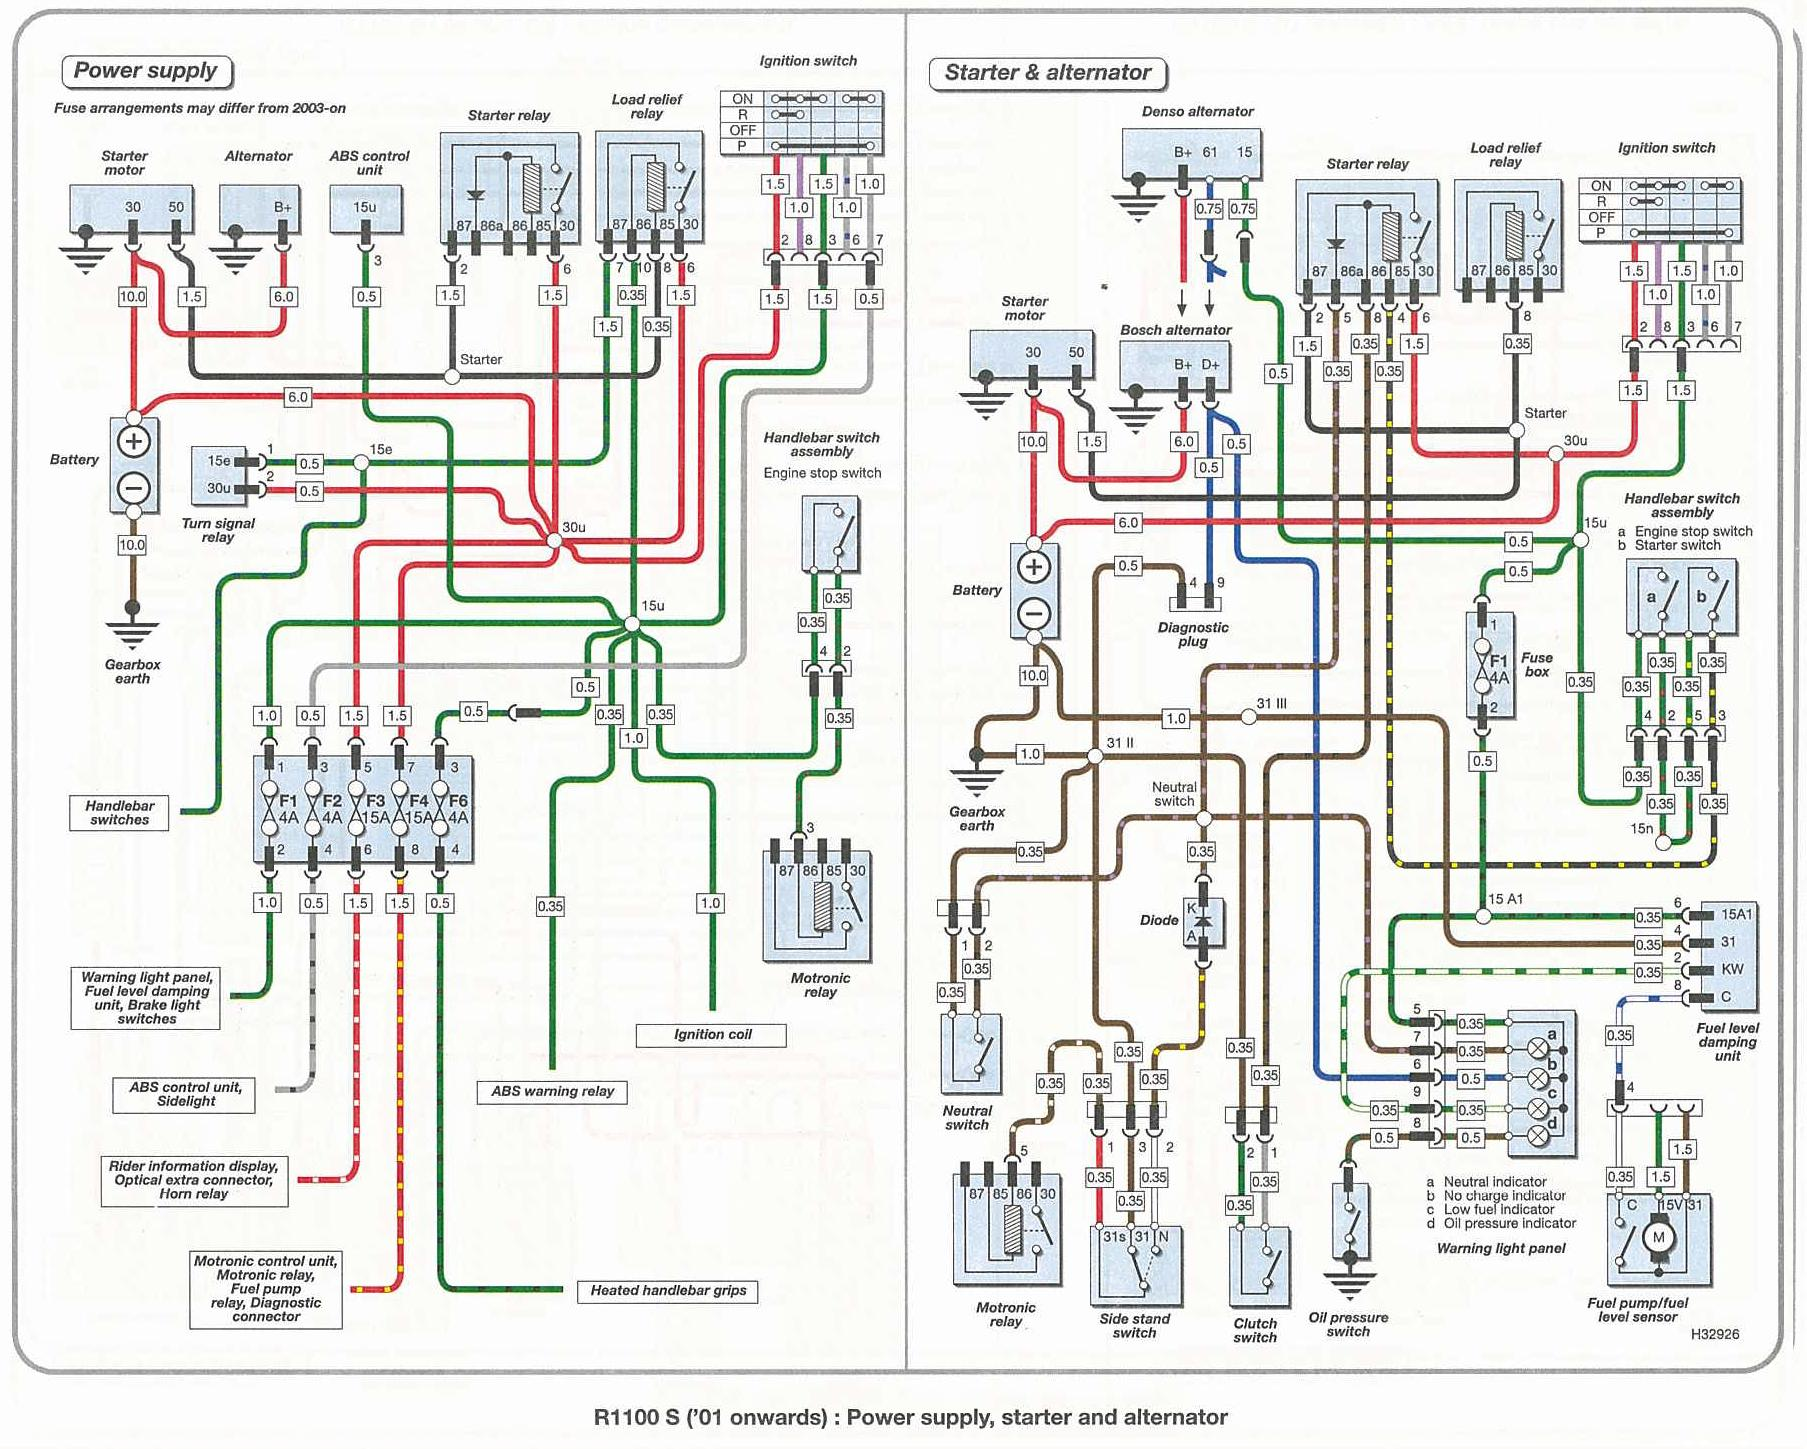 wiring05 bmw wiring diagram bmw wiring diagrams e39 \u2022 wiring diagrams j bmw e46 wiring diagram download at honlapkeszites.co